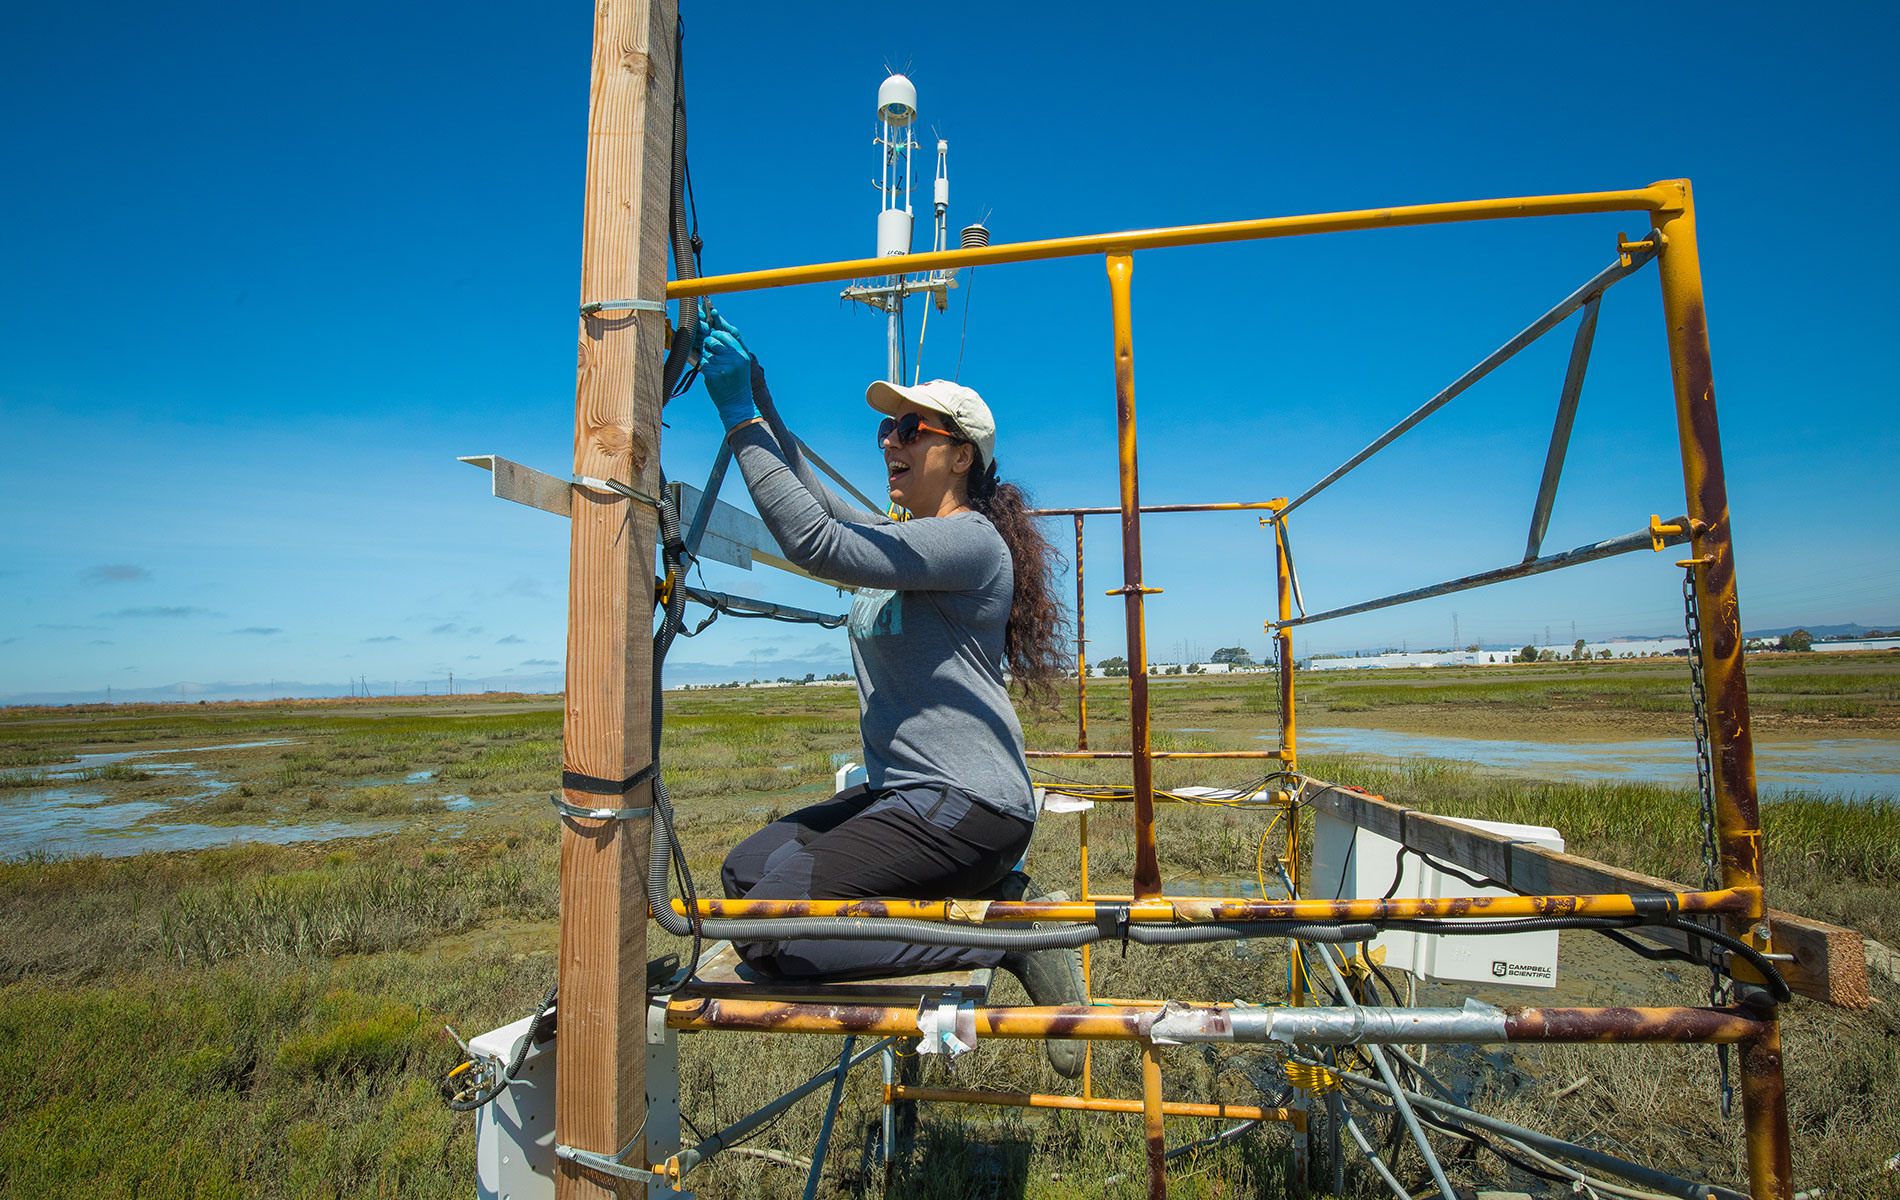 Woman works on scaffolding in wetlands area